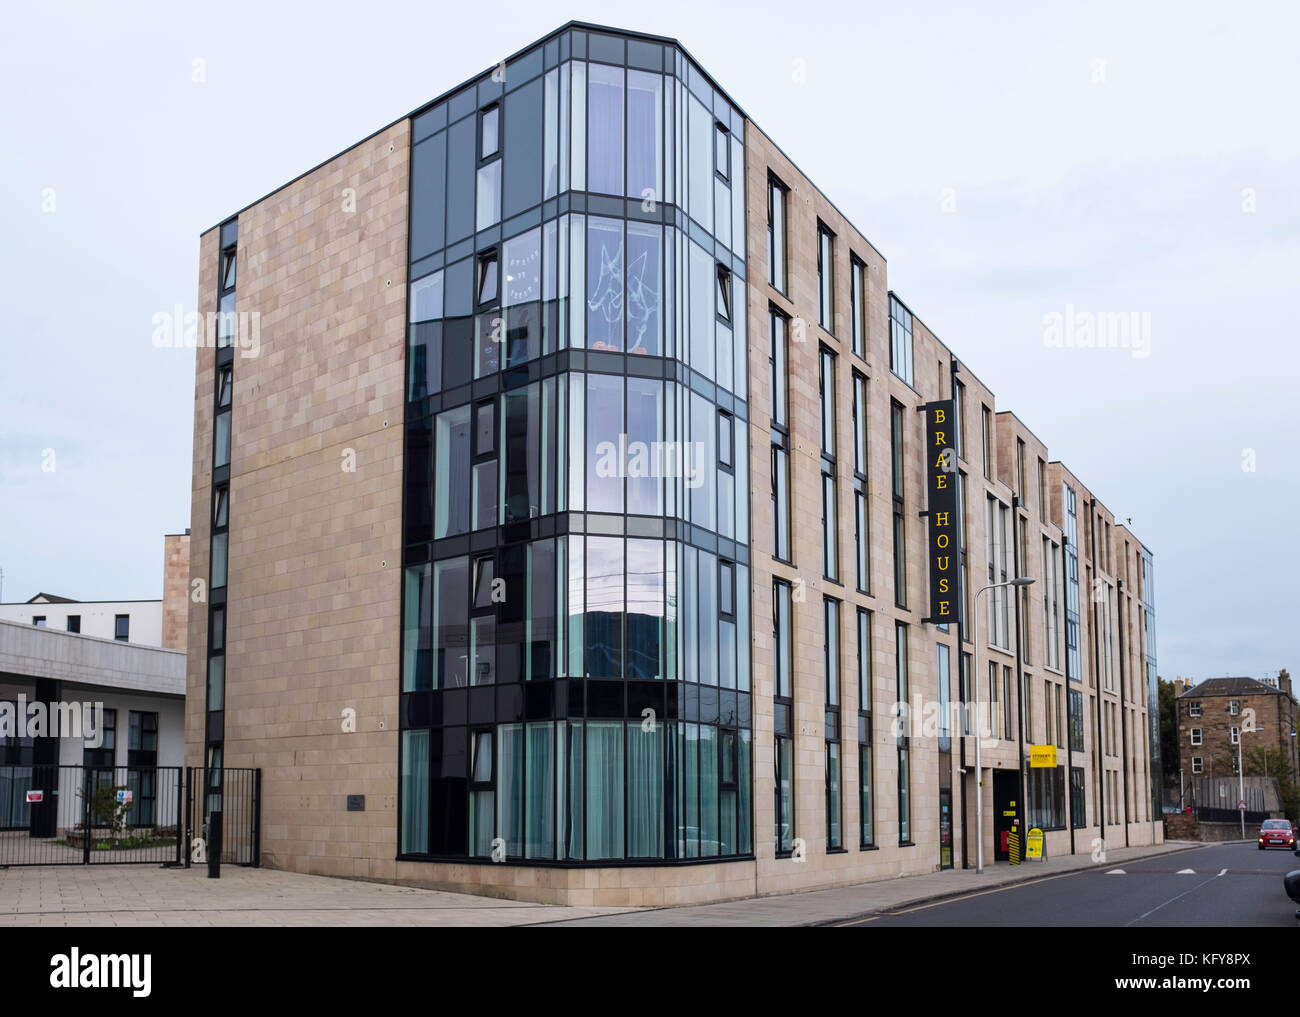 Brae House operated by The Student Housing Company is a block of apartments for students in central Edinburgh, Scotland, - Stock Image